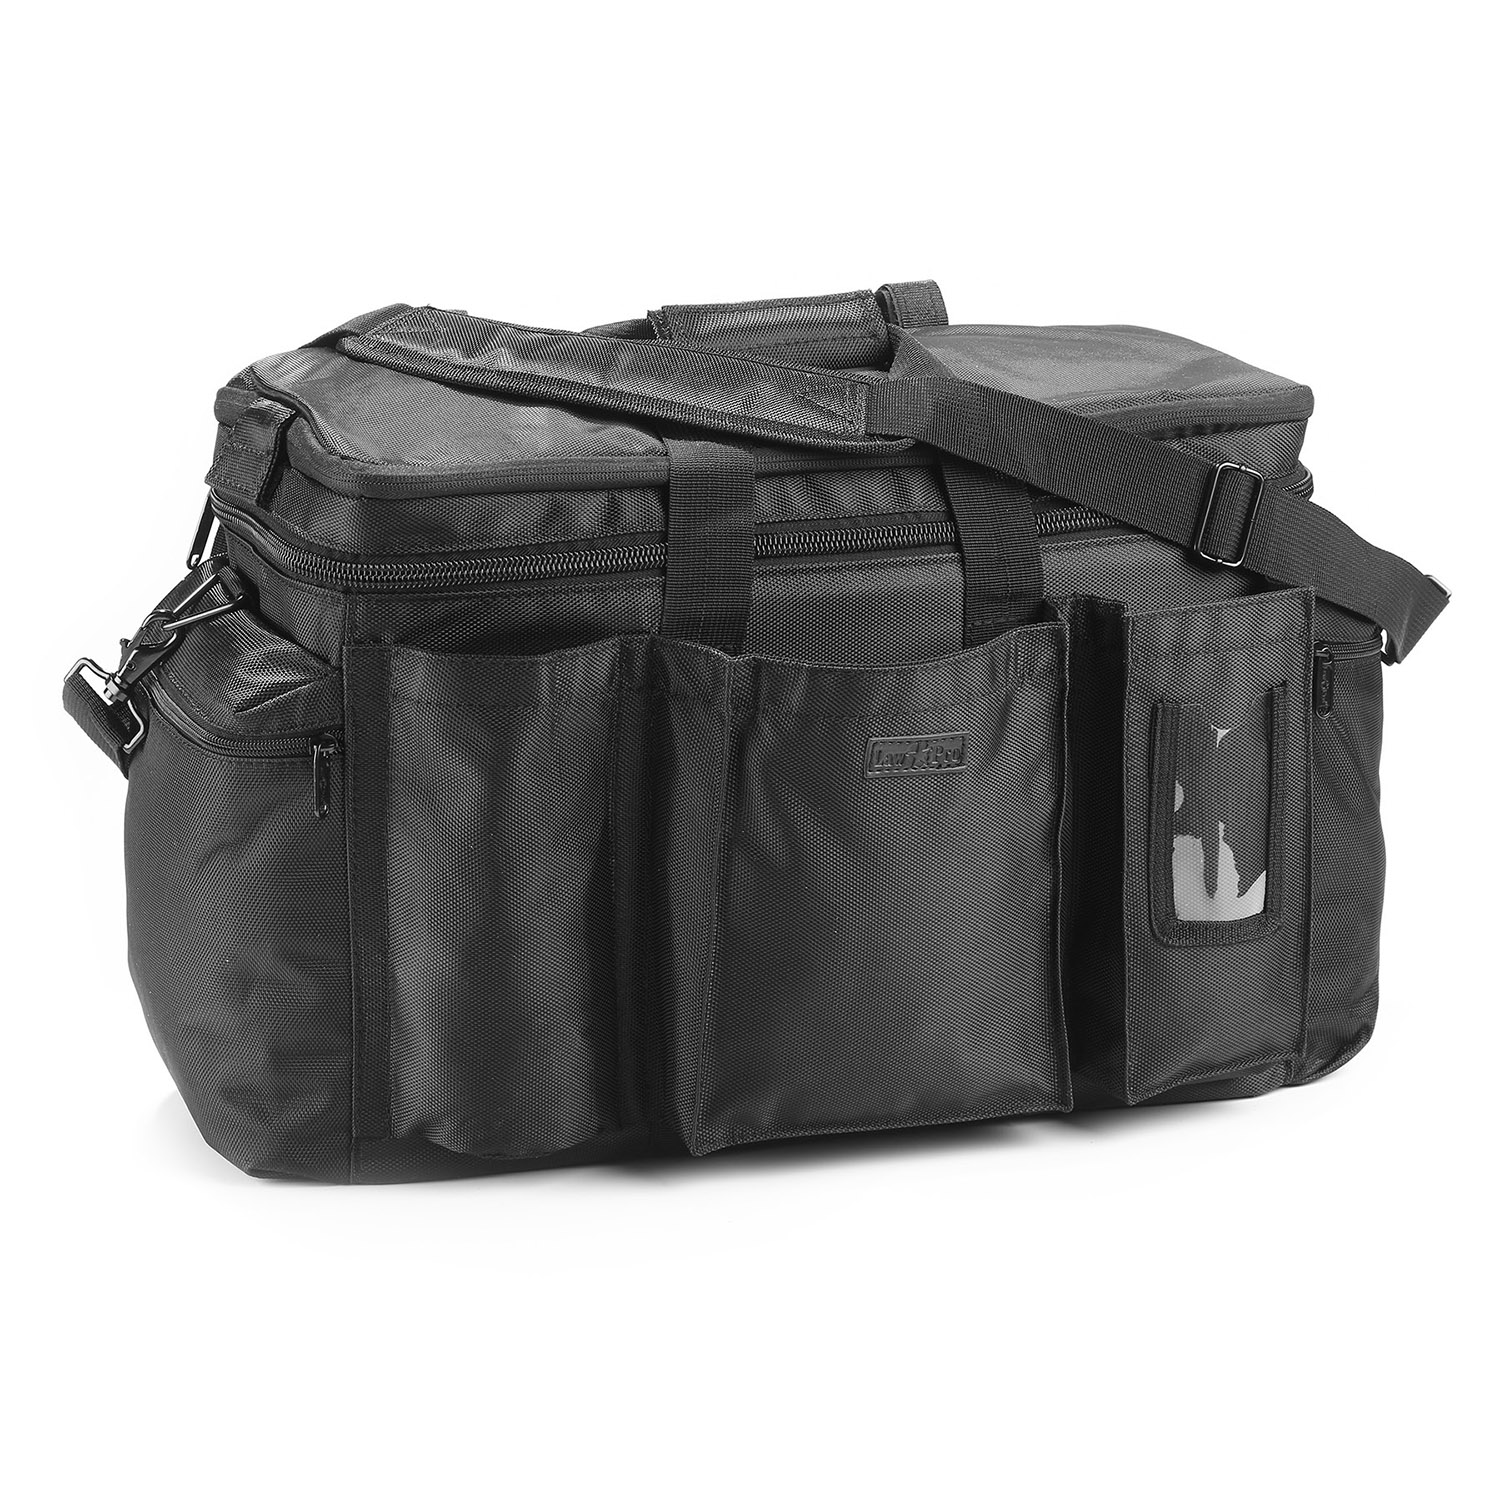 LawPro Police Equipment Bag